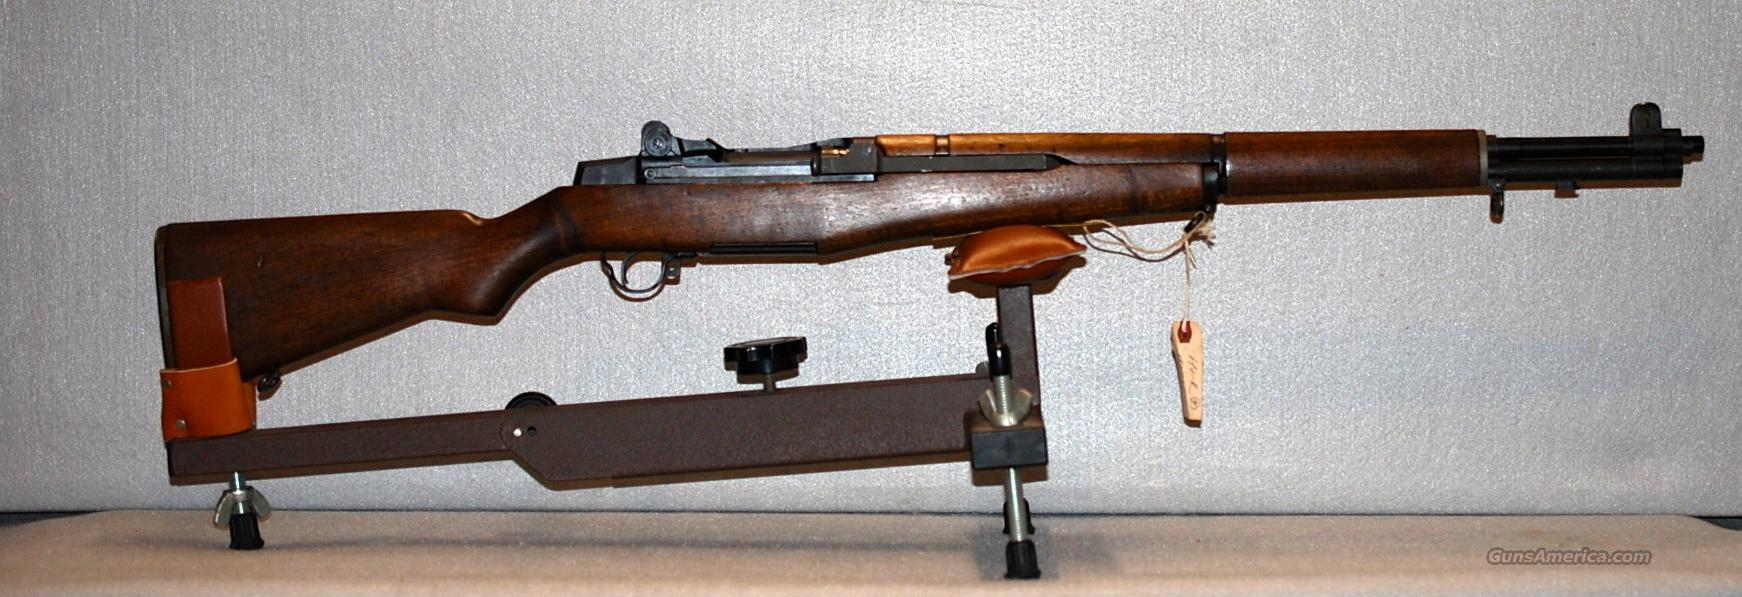 M1 Garand H&R all matching  Guns > Rifles > Harrington & Richardson Rifles